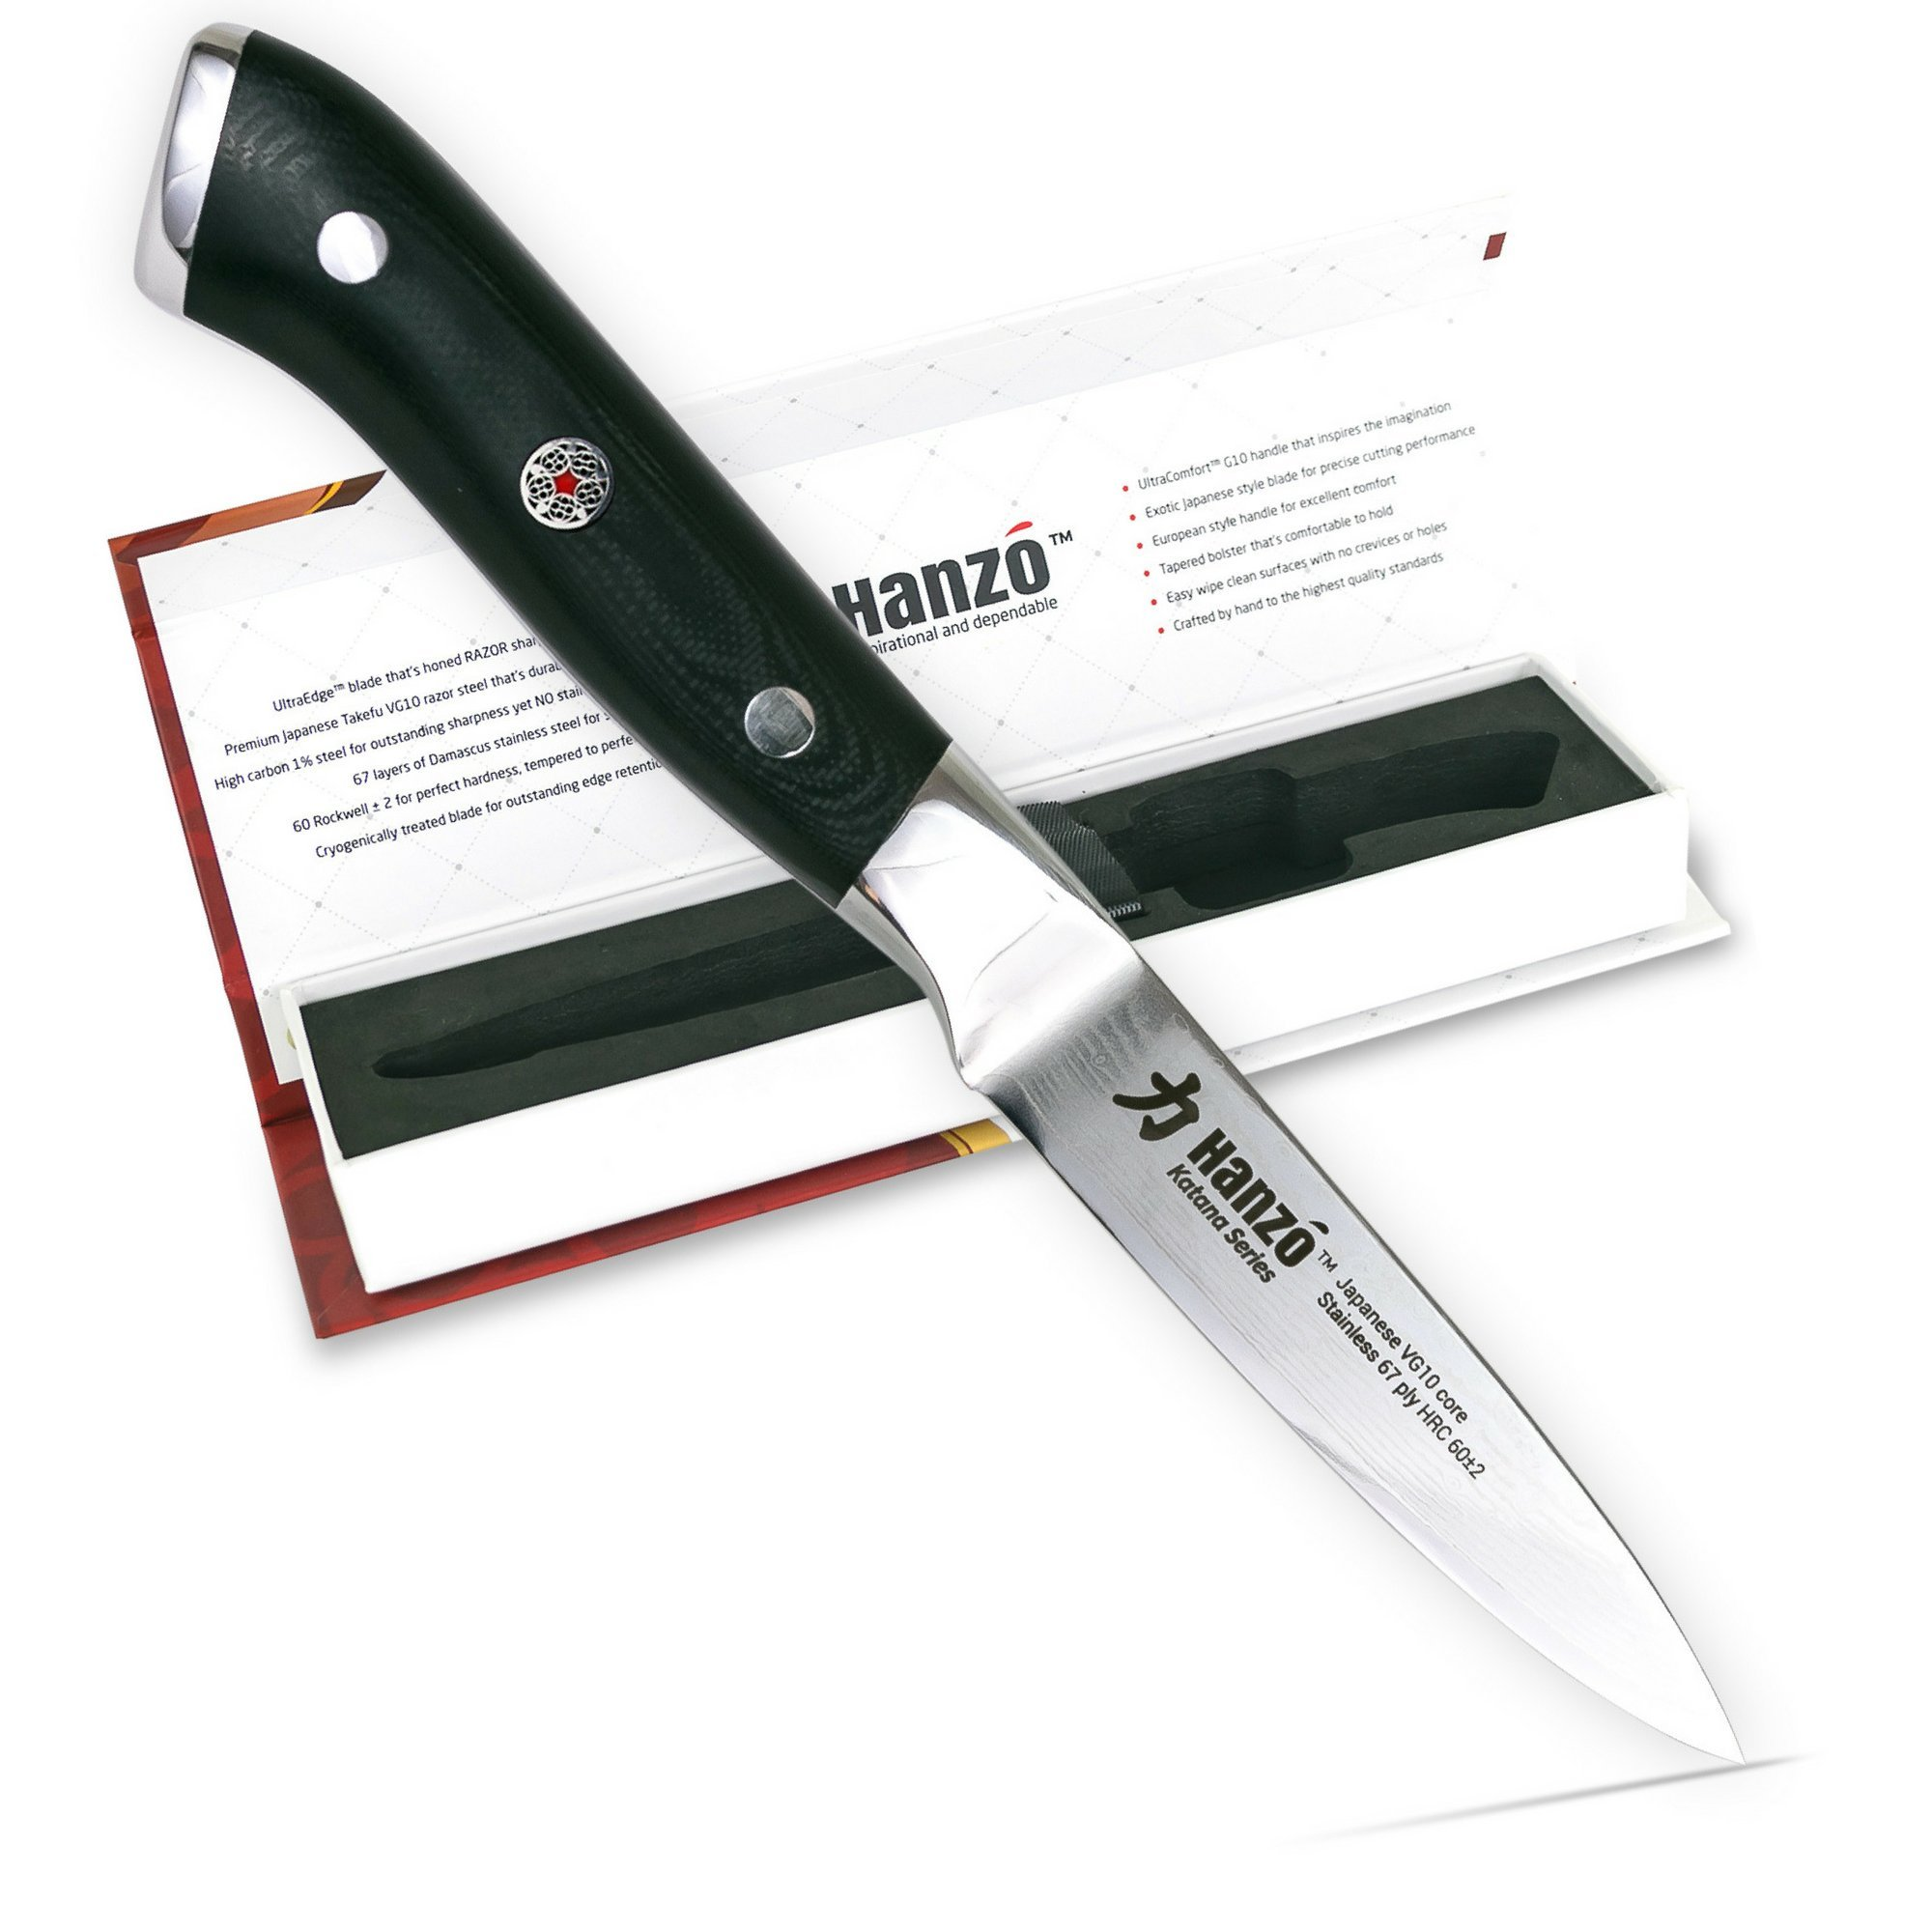 HANZO Paring Professional Chef Knife - 3.75 inch